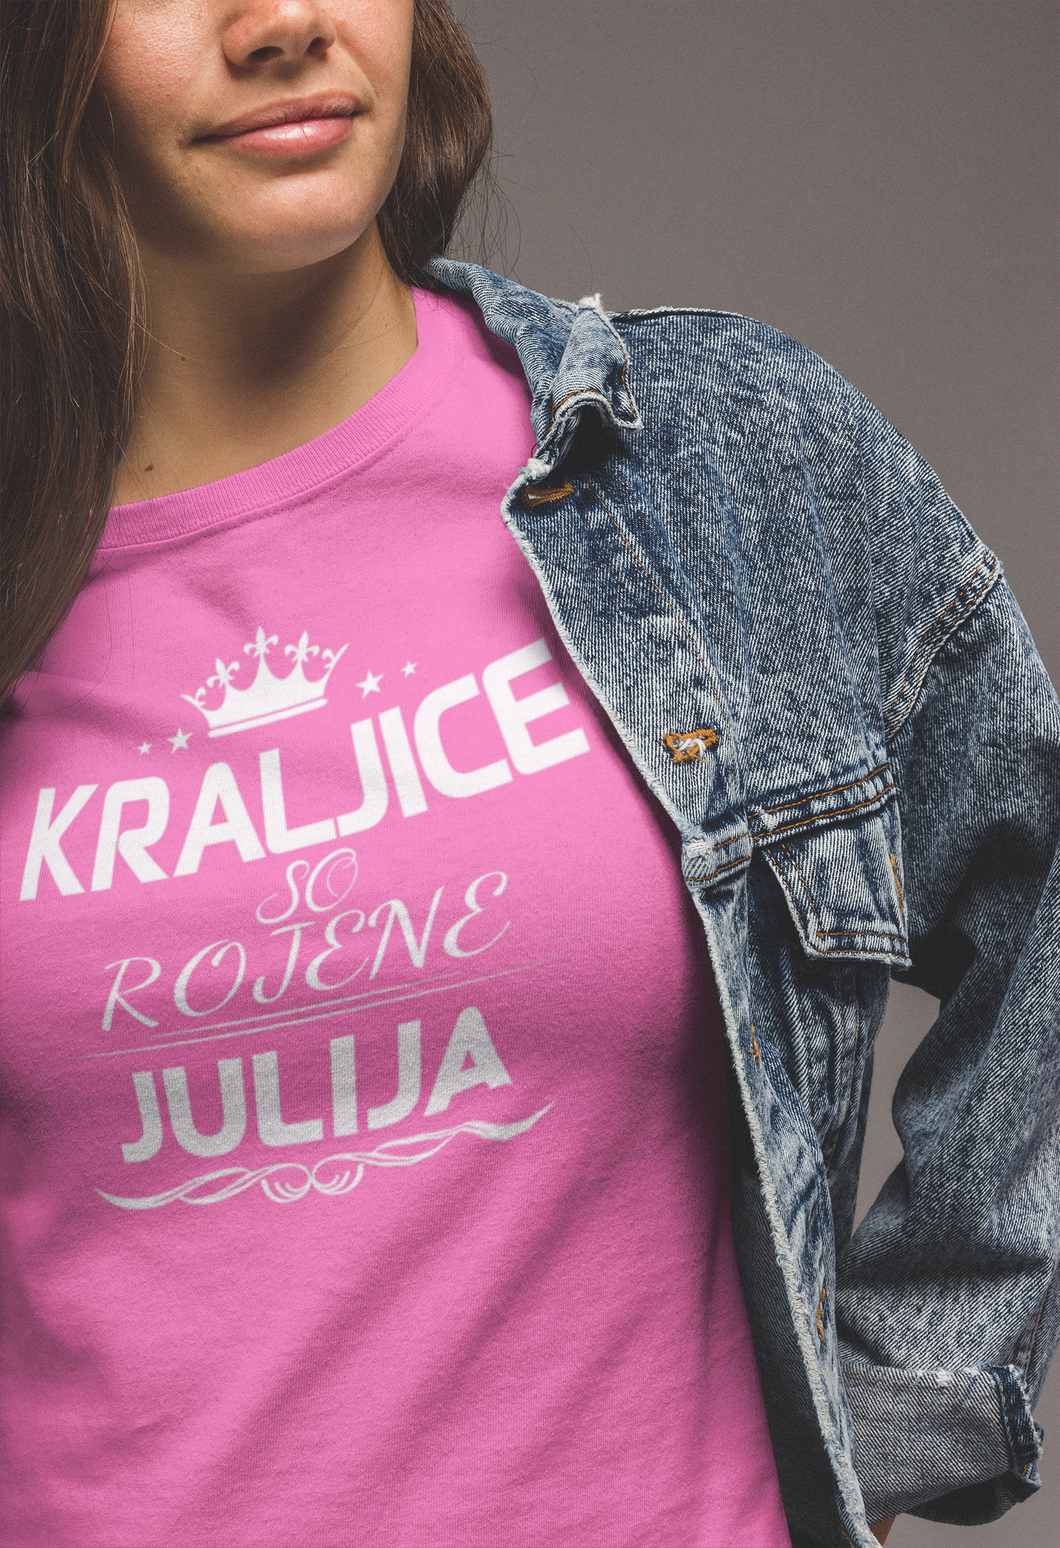 Outlet Majica Kraljice So Rojene - Julij